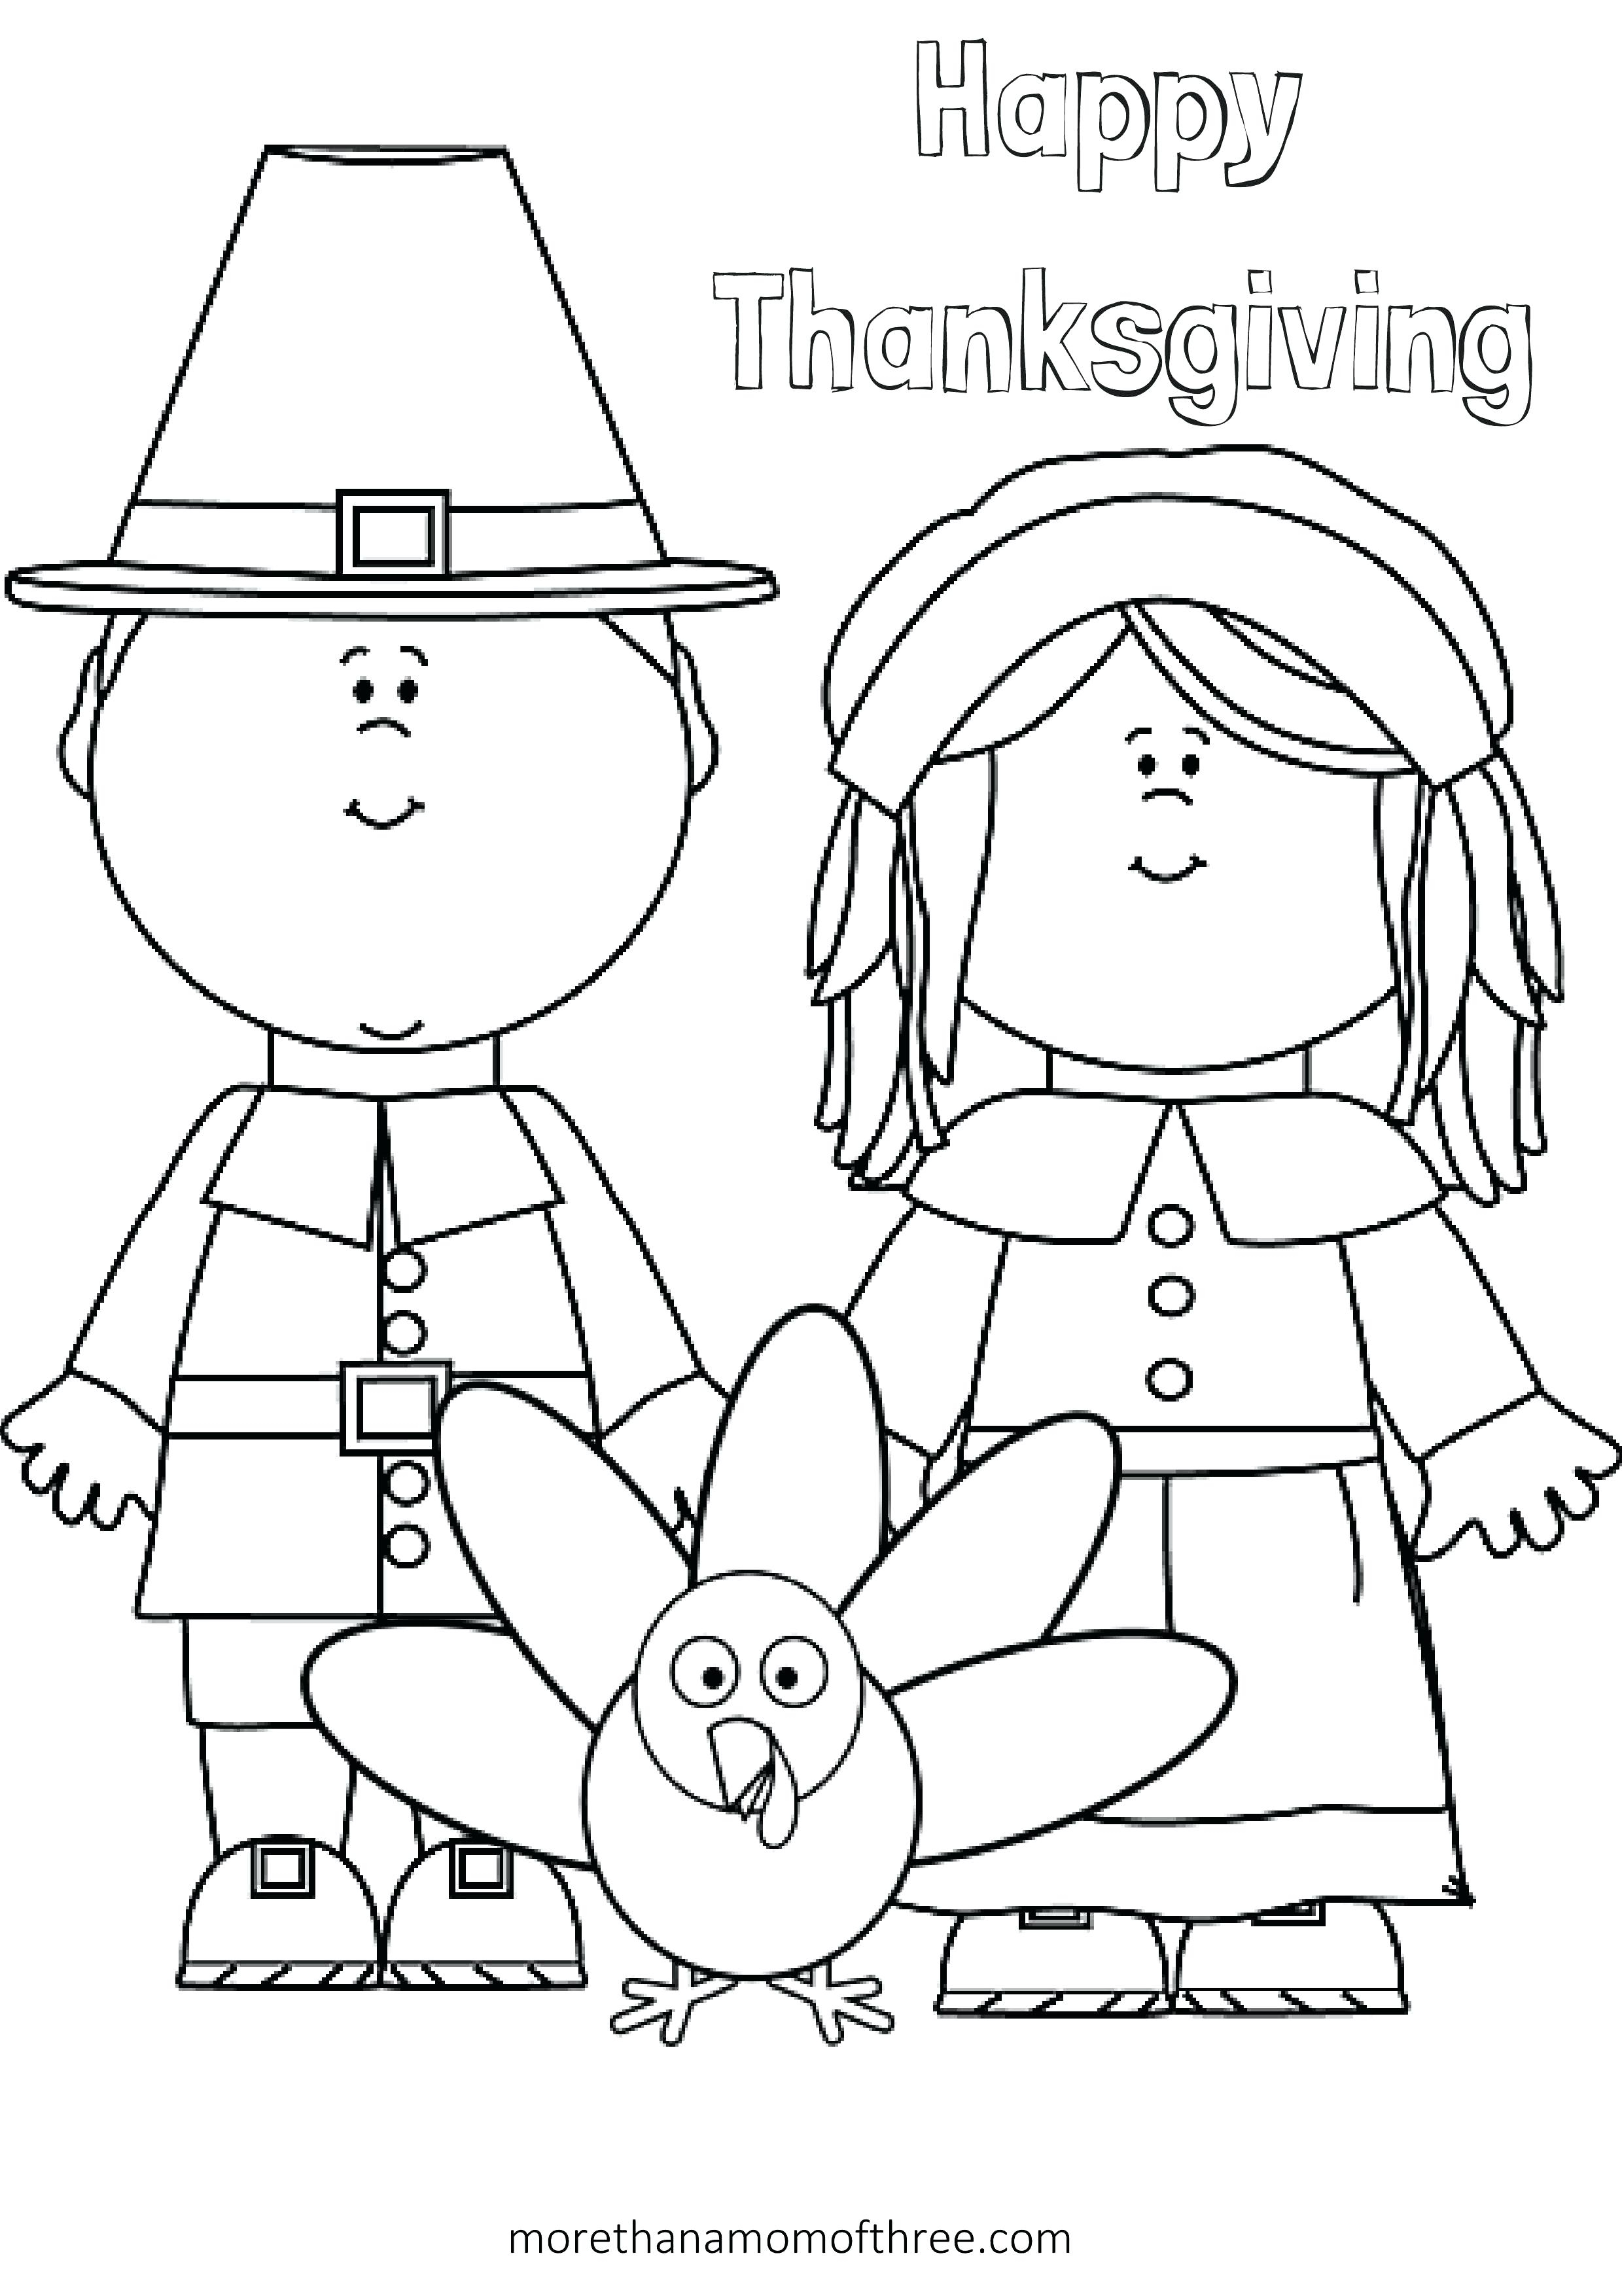 Pilgrim Coloring Pages Pilgrim Hats Coloring Pages Tophatsheetco